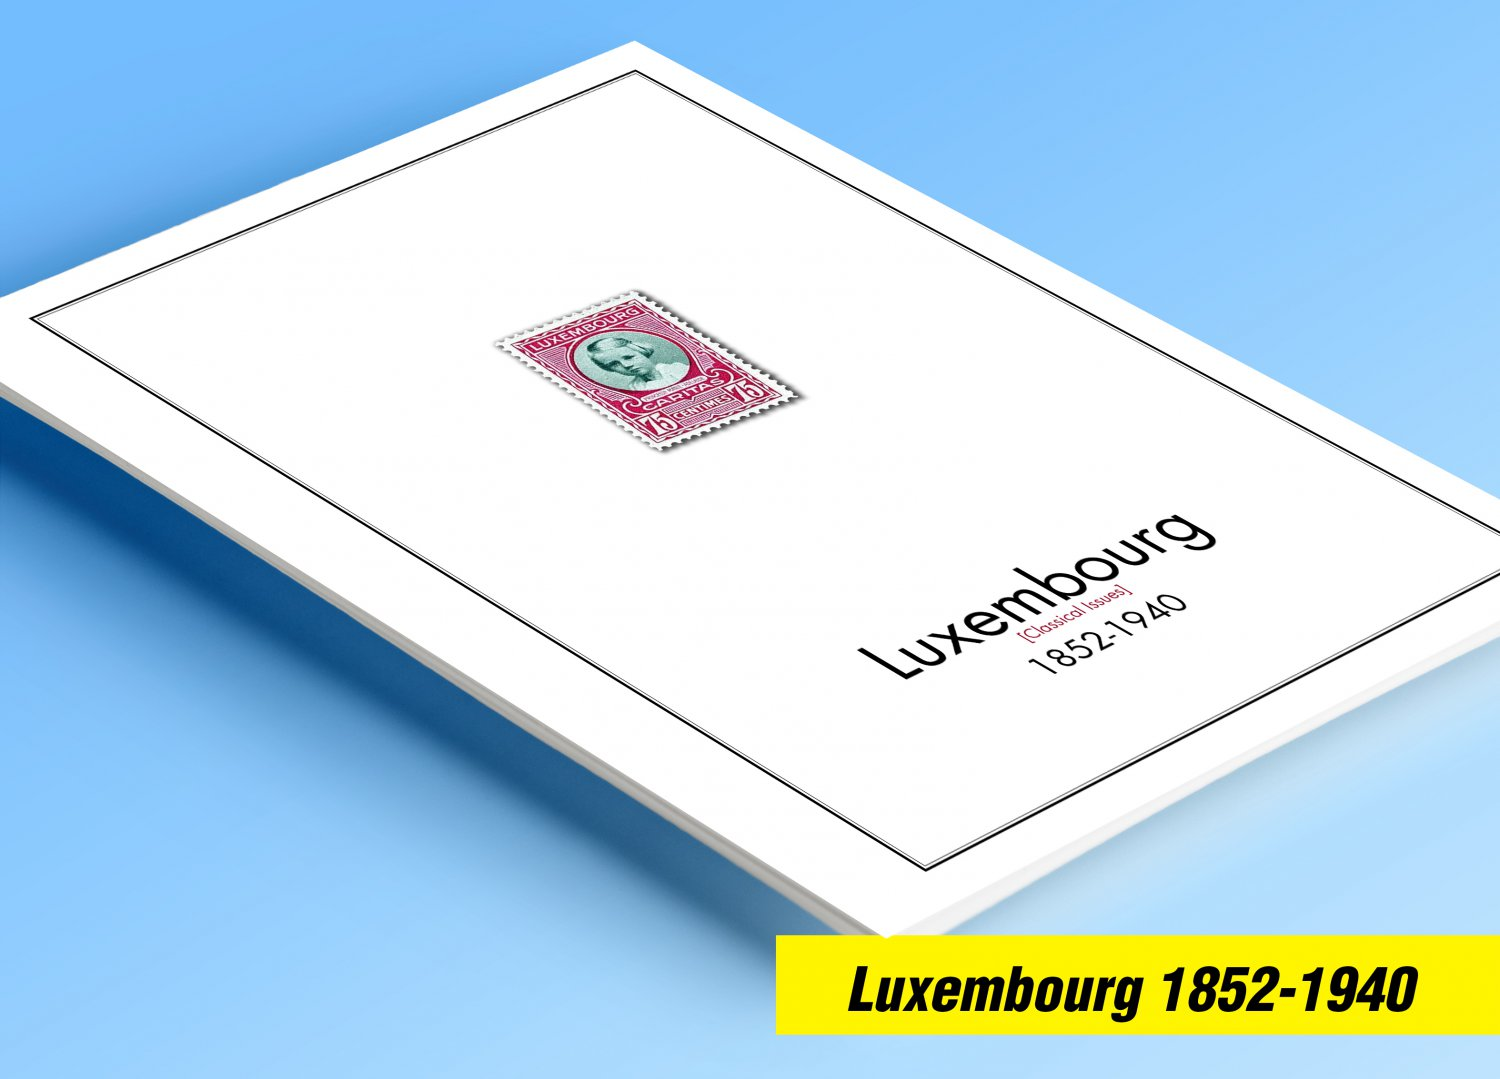 COLOR PRINTED LUXEMBOURG [CLASS.] 1852-1940 STAMP ALBUM PAGES (37 illustrated pages)